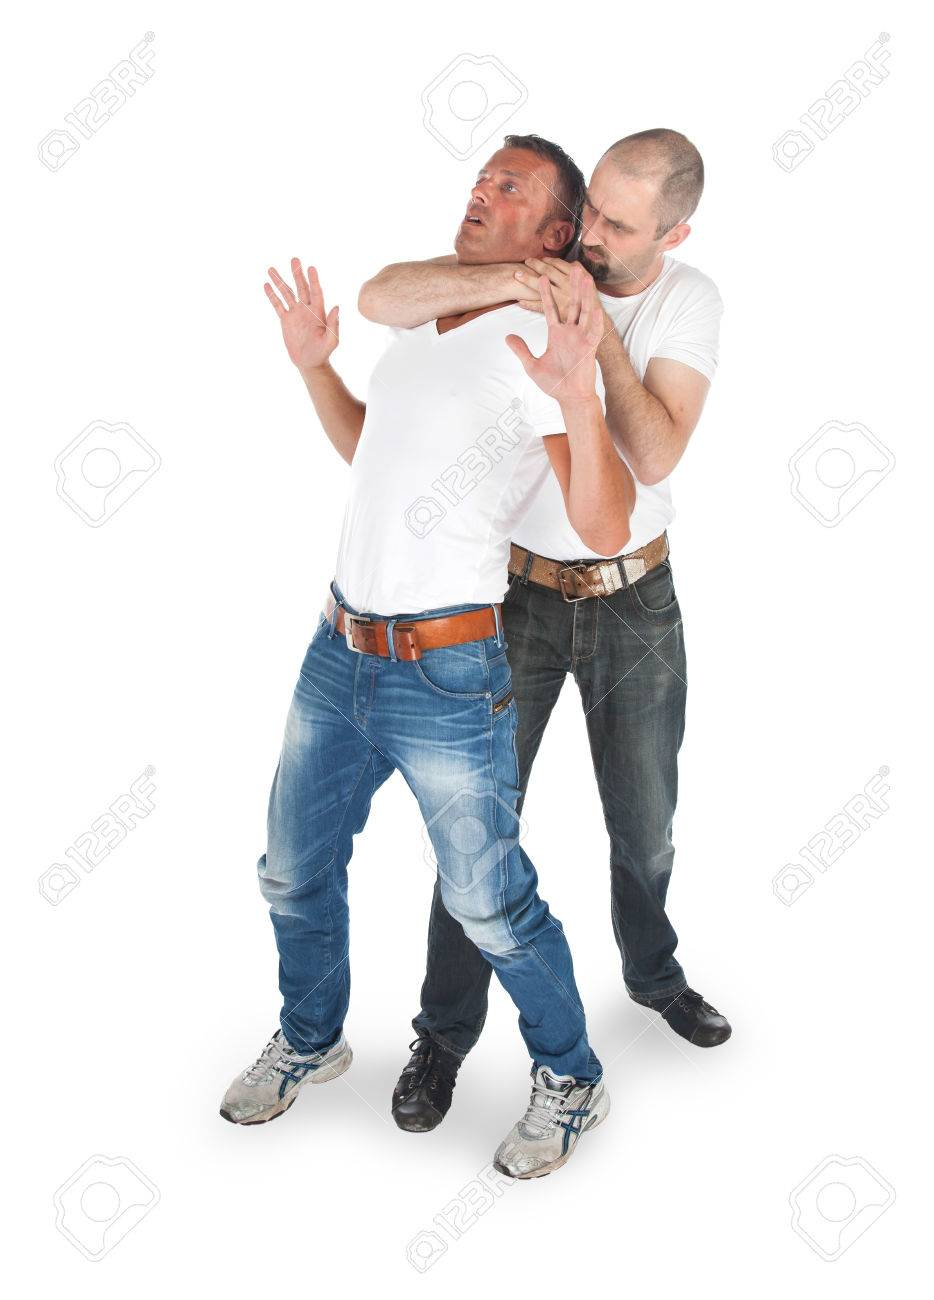 Man attacking from another man, isolated on white Stock Photo - 22875405